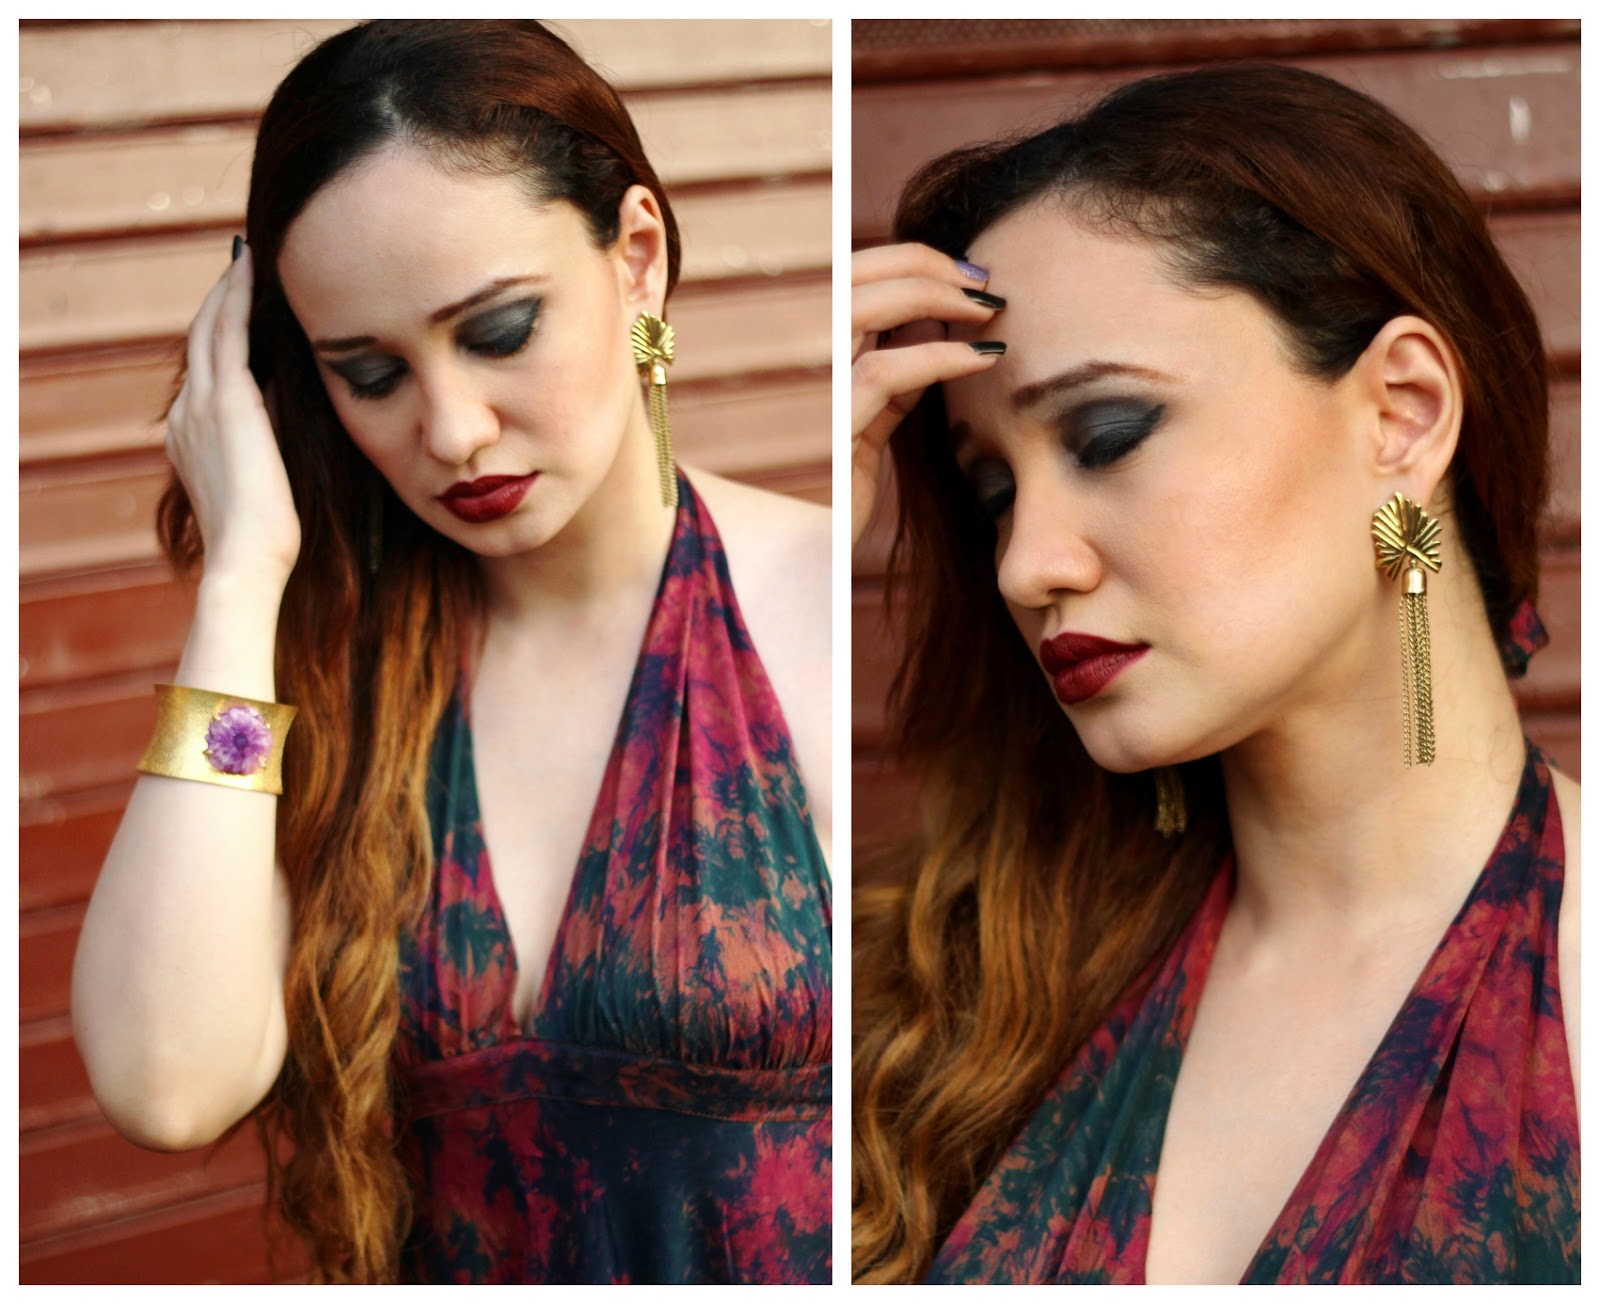 Gold Hand-Cuff, Gold Tassel Earrings, Mac Diva,Bordeaux Lips ,Smokey Eyes